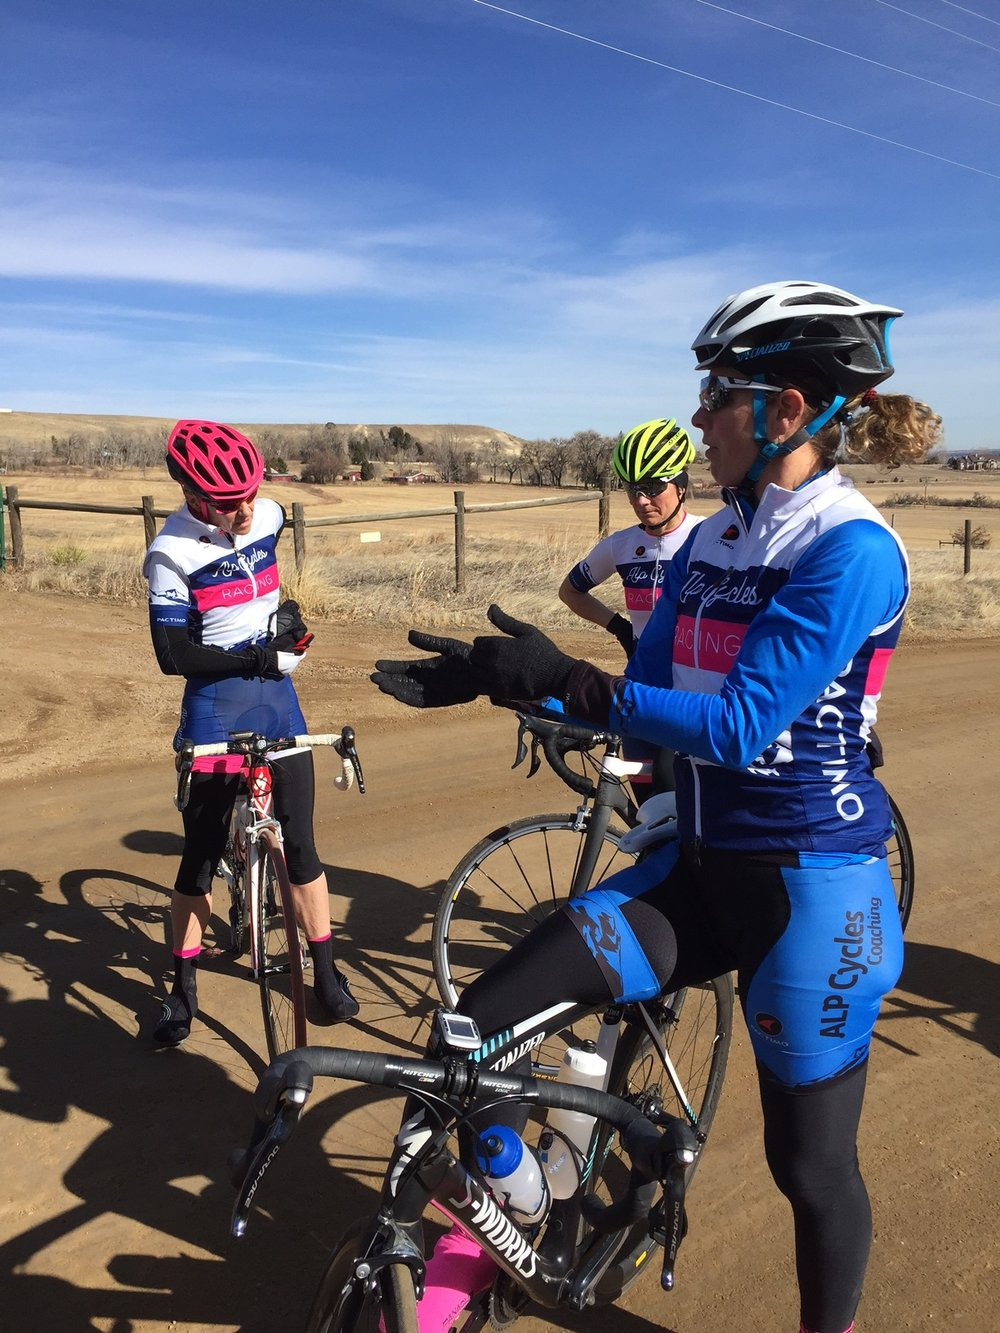 As a new team, ALP Cycles Race Team is practicing each chance they get to learn the art of bike racing.